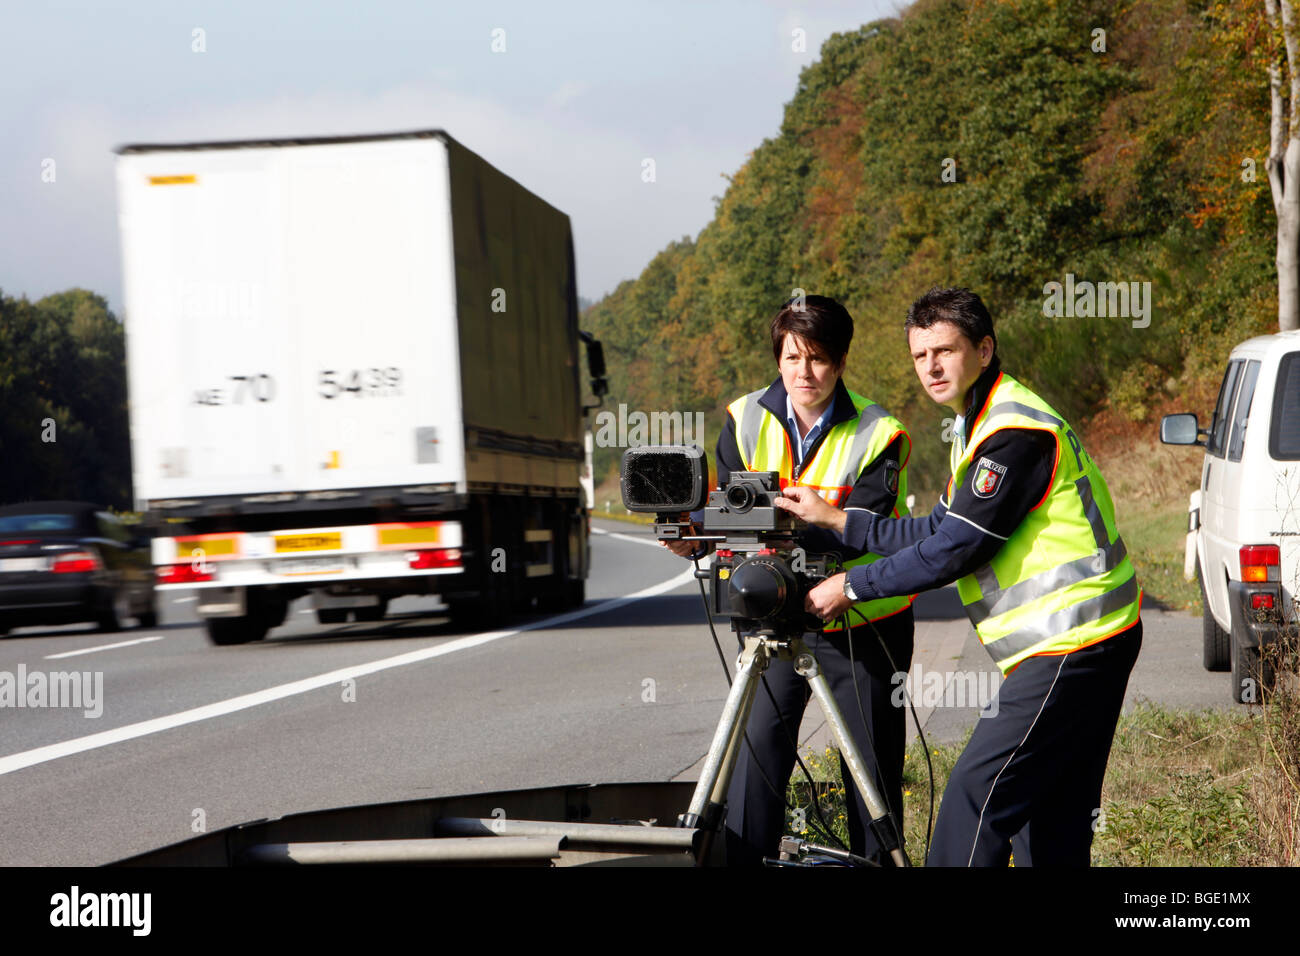 Highway Police With A Radar Speed Limit Enforcement At A German Stock Photo 27353562 Alamy